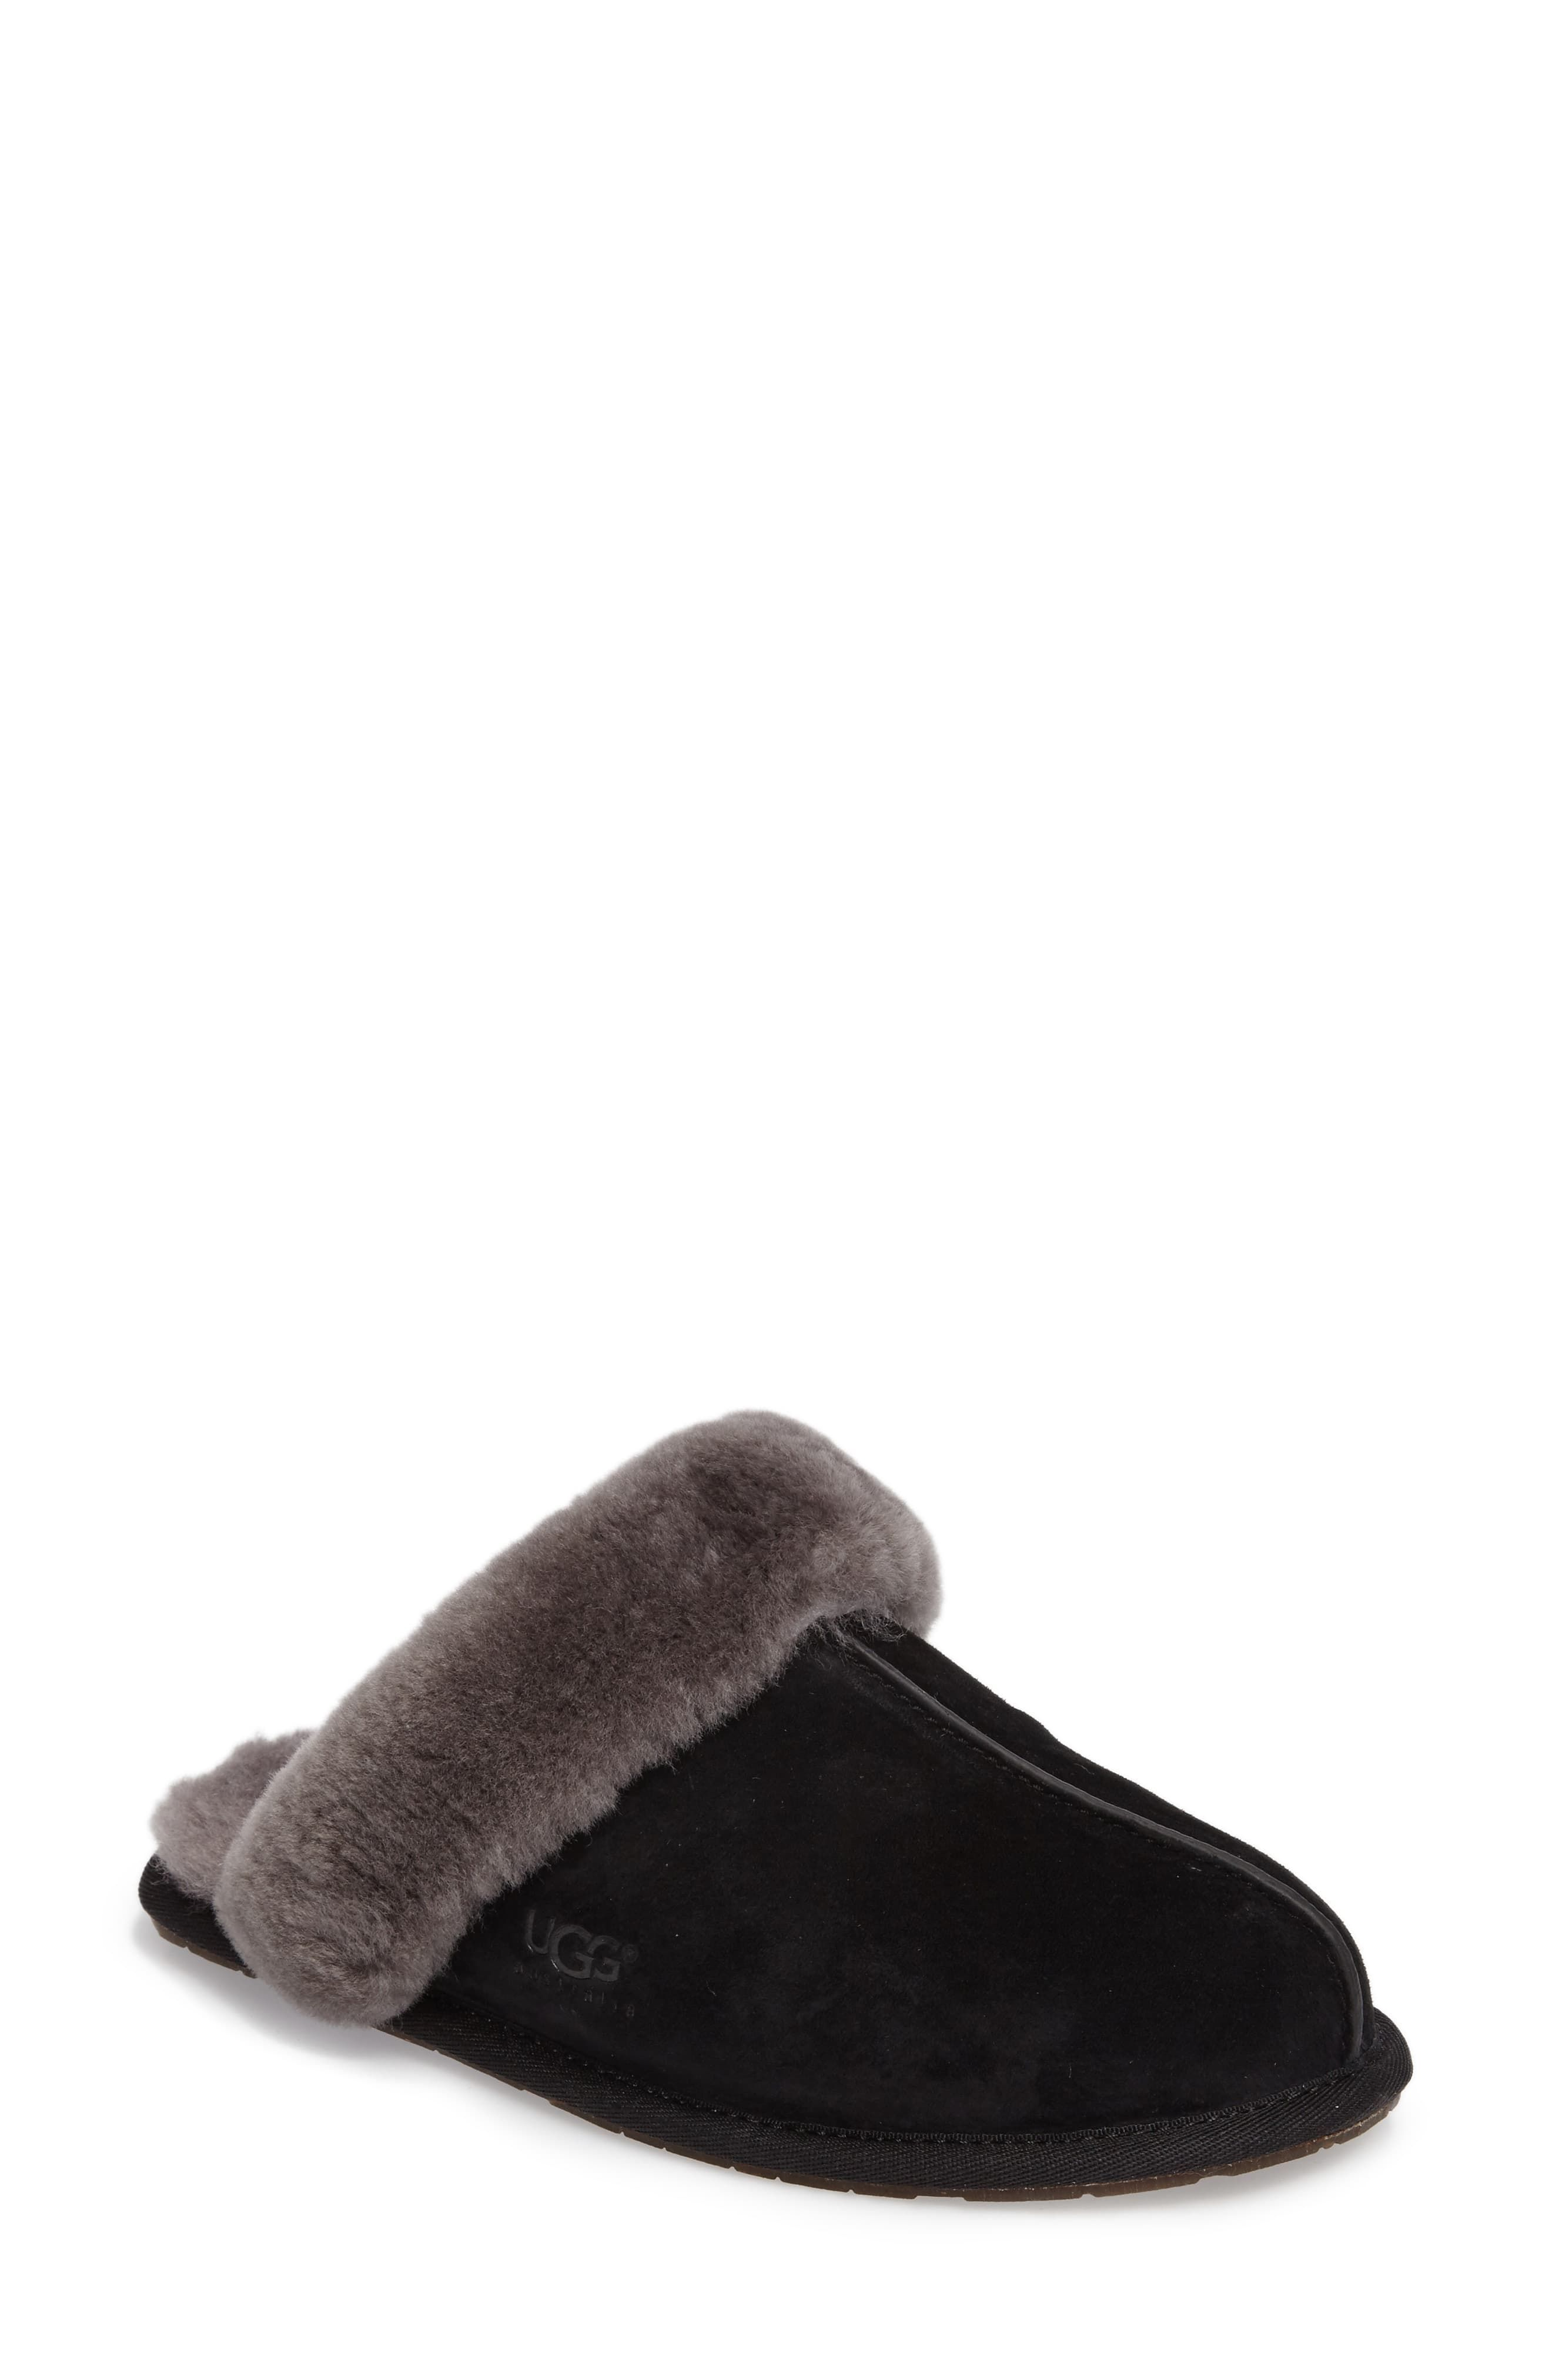 1e10cac1d4f UGG Scuffette II Water Resistant Slipper in 2019 | Products | Womens ...